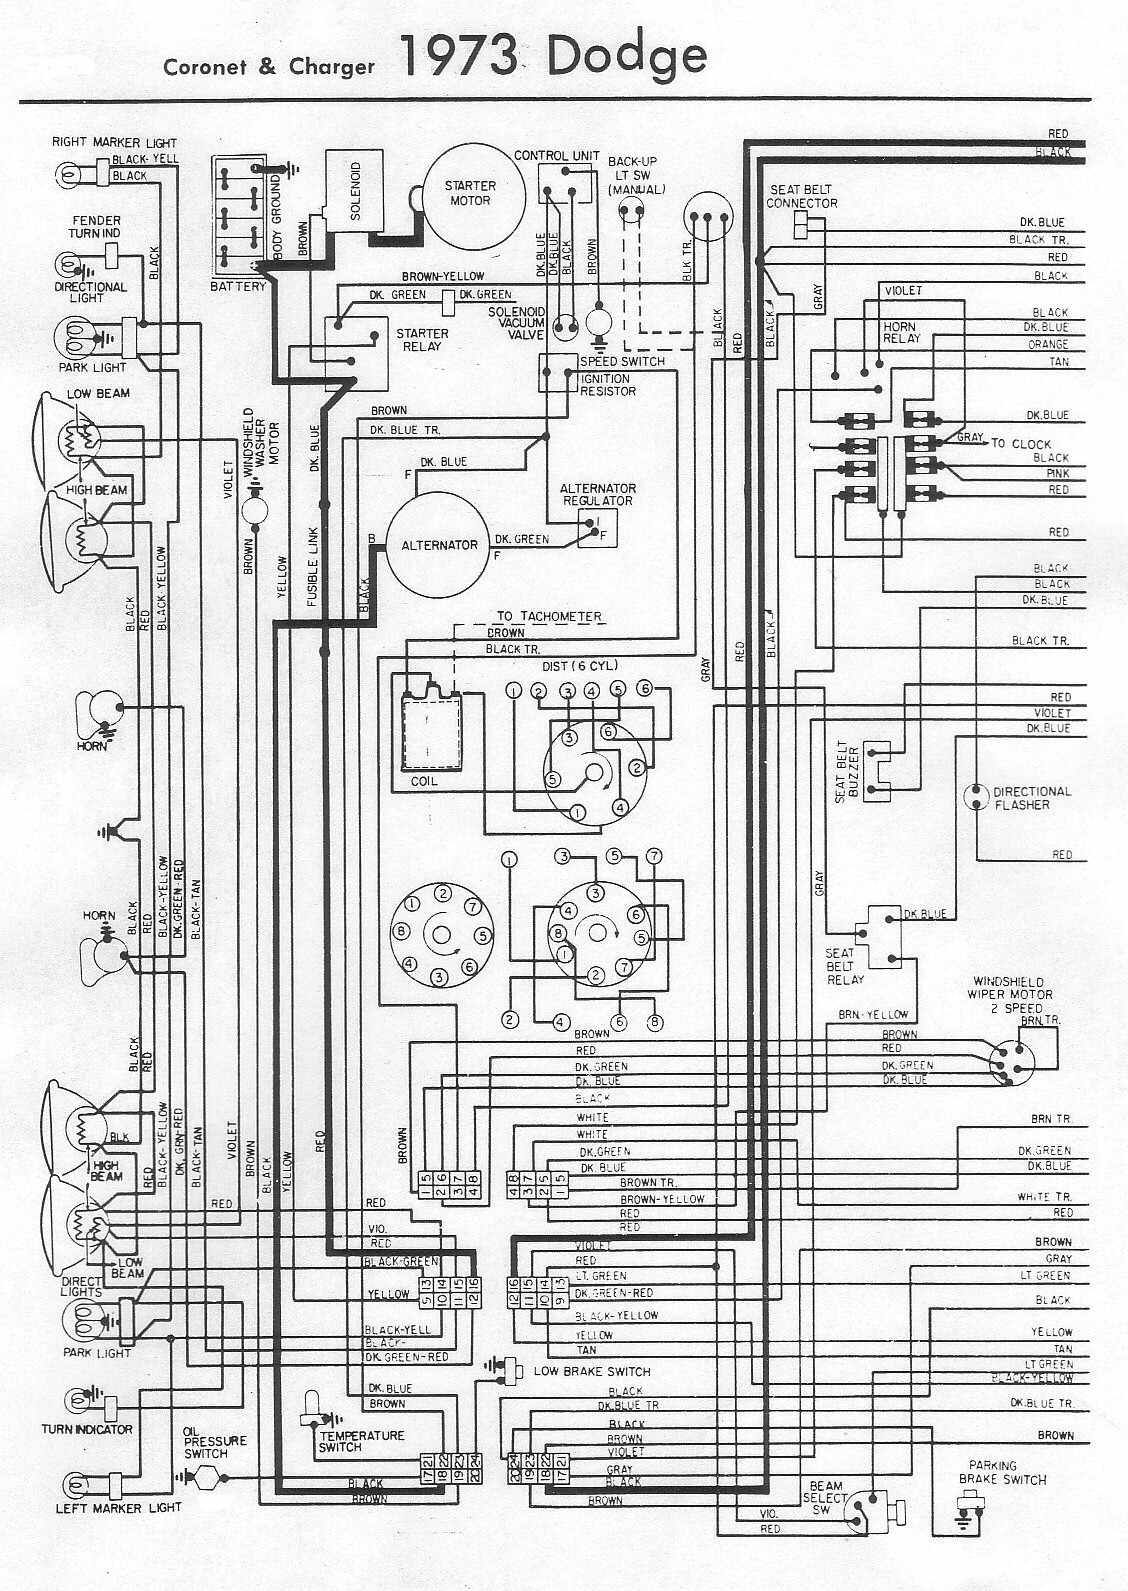 medium resolution of 1973 dodge challenger wiring diagram for electronic distributor wiring diagram expert